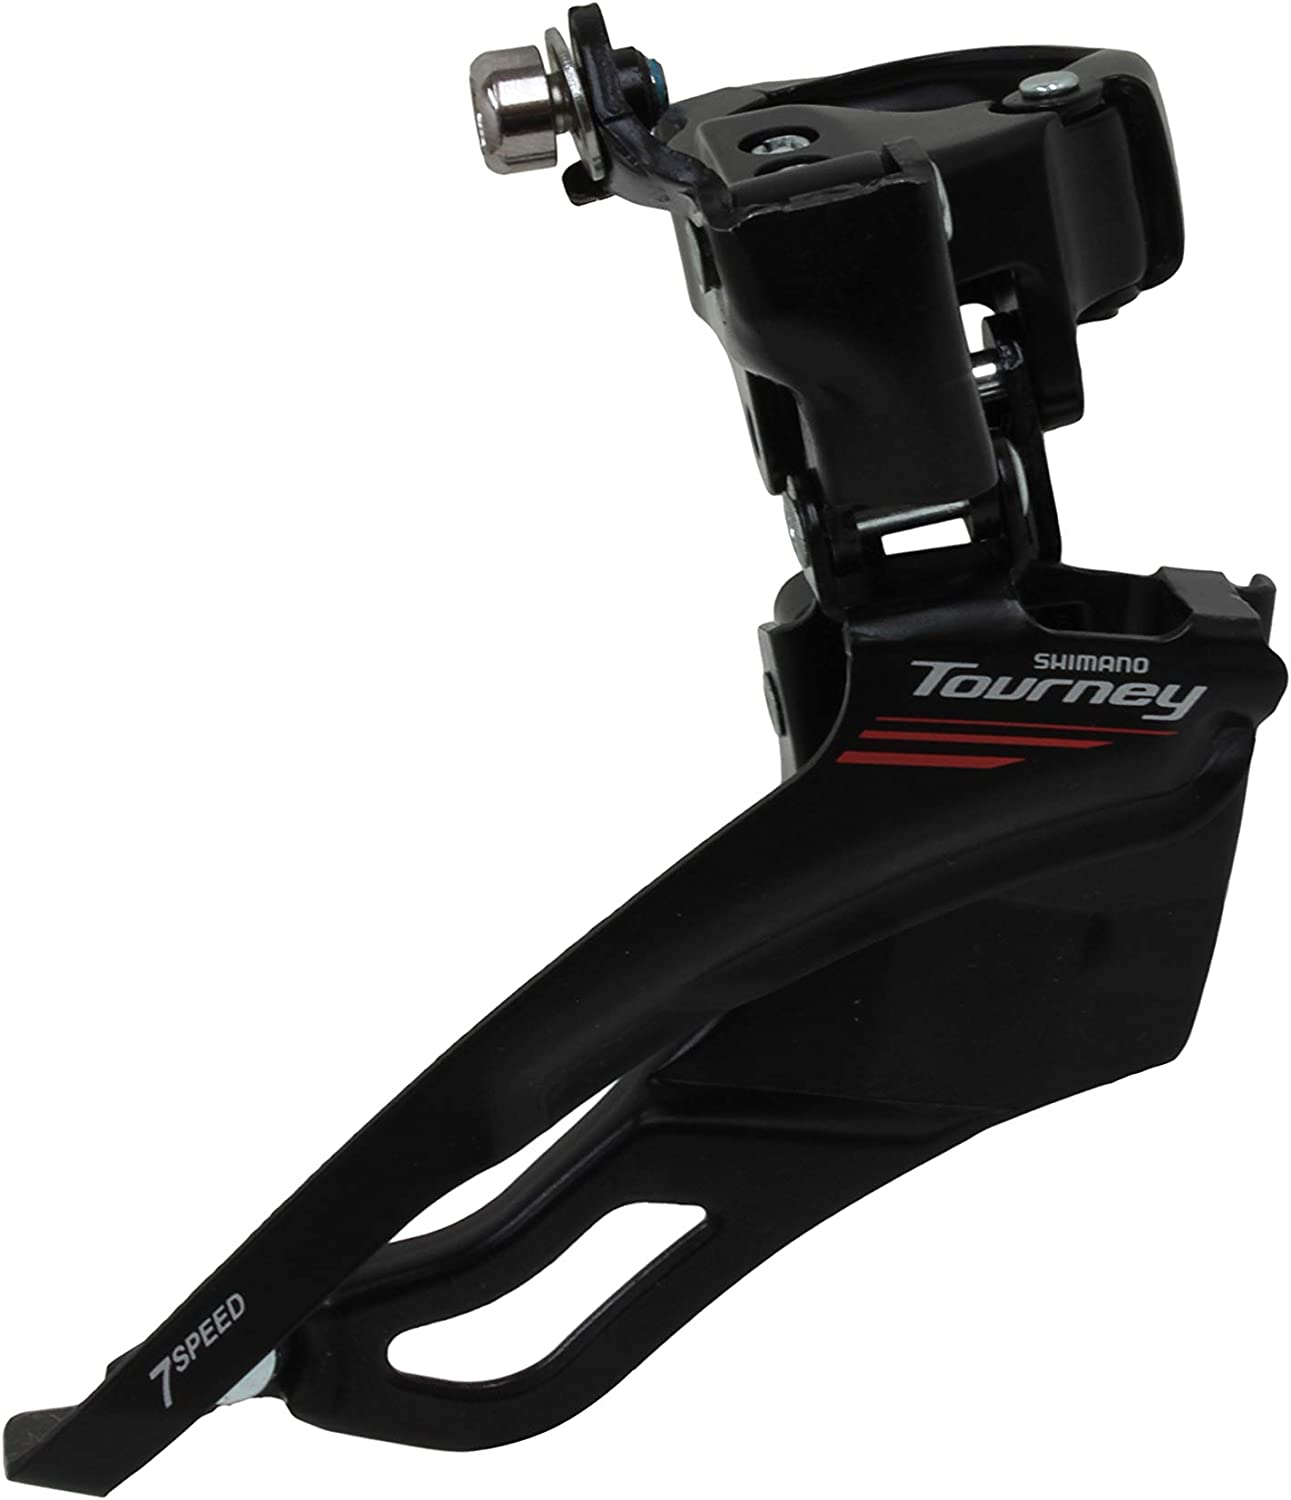 NEW Shimano Tourney Front Derailleur 6//7Speed Triple 31.8mm Clamp On Down Swing